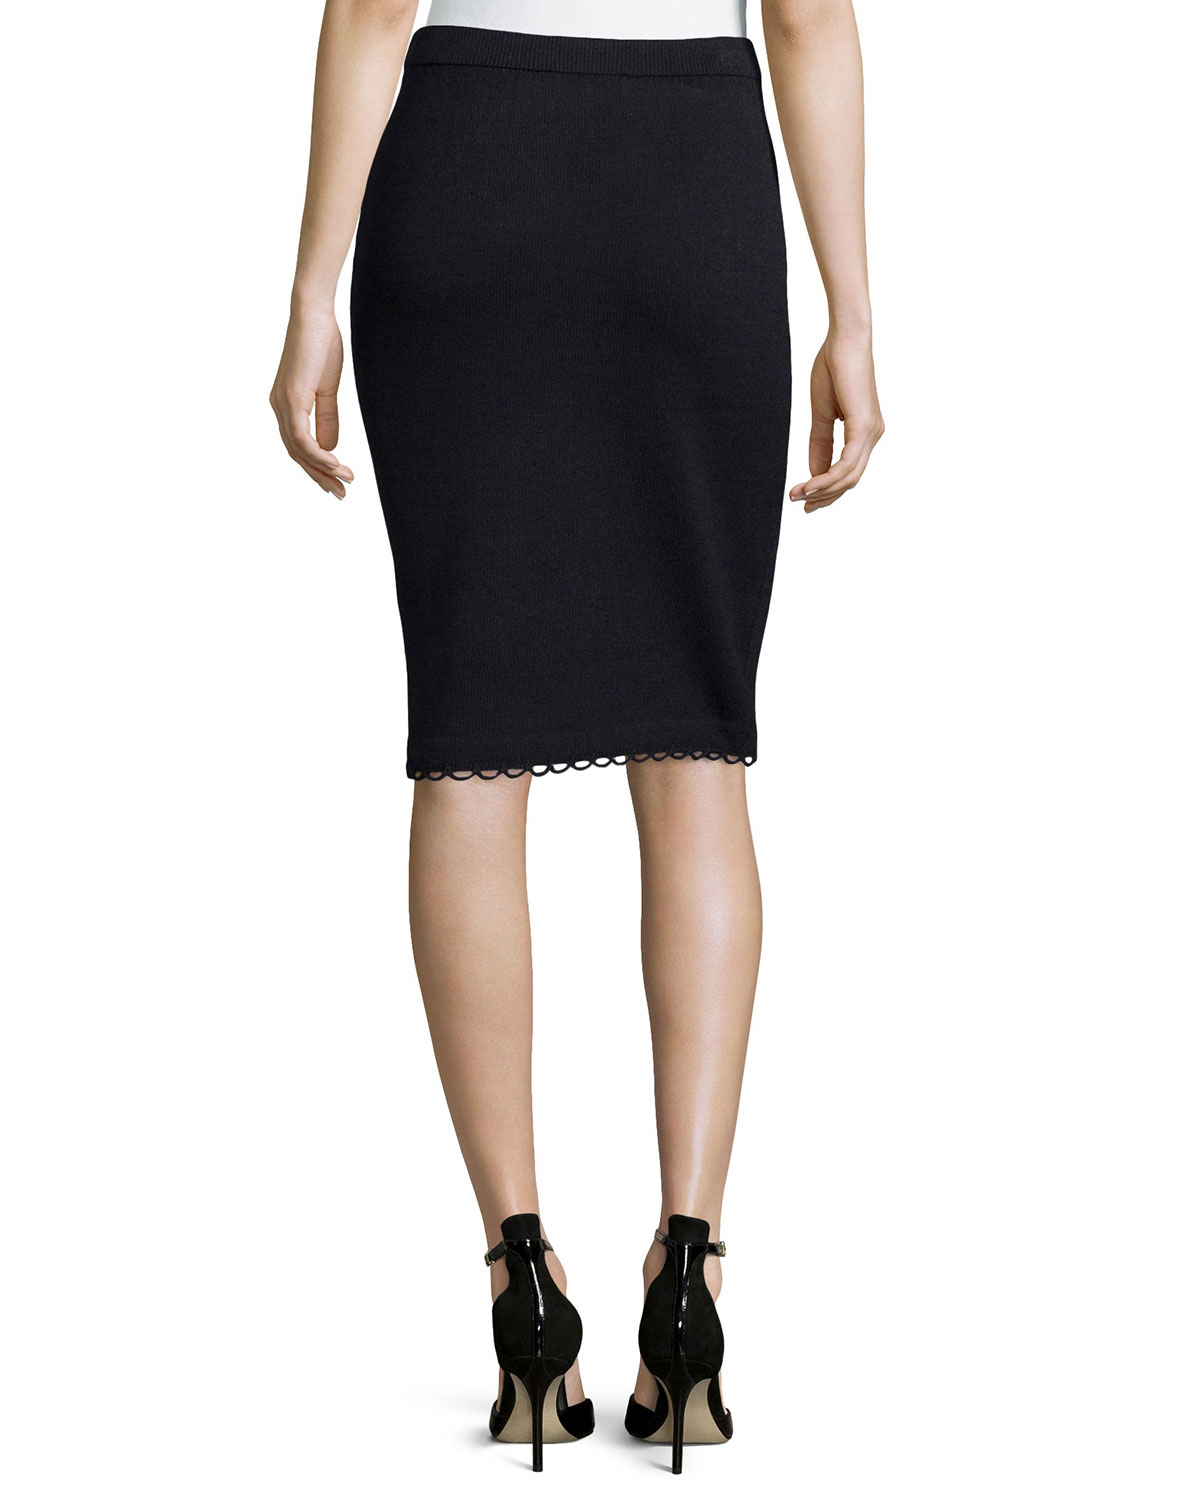 st pull on knit pencil skirt with loop trim in black